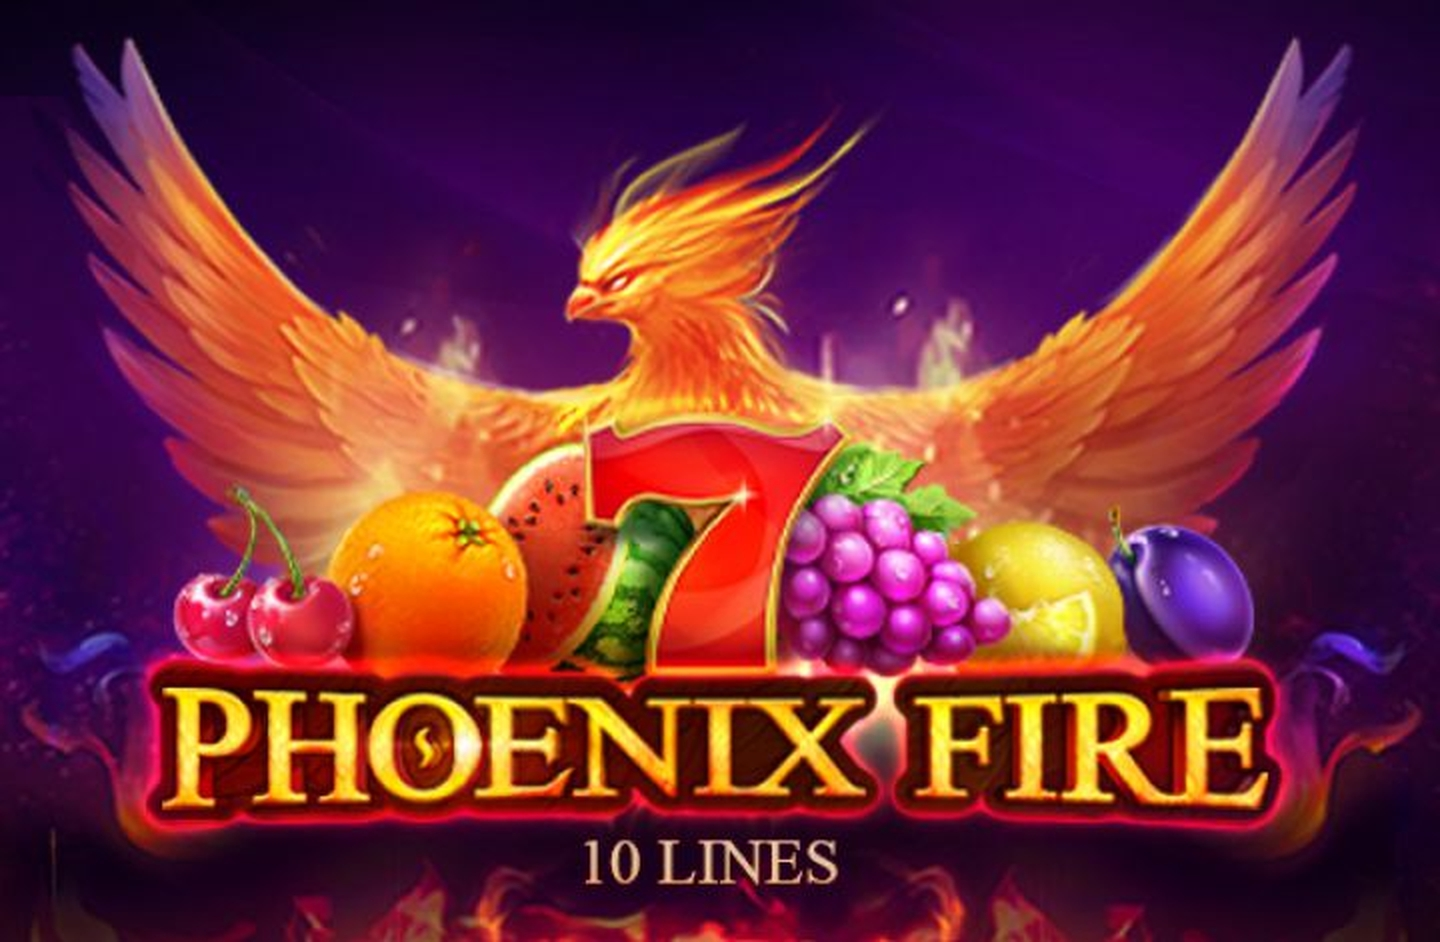 The Phoenix Fire Online Slot Demo Game by Playson